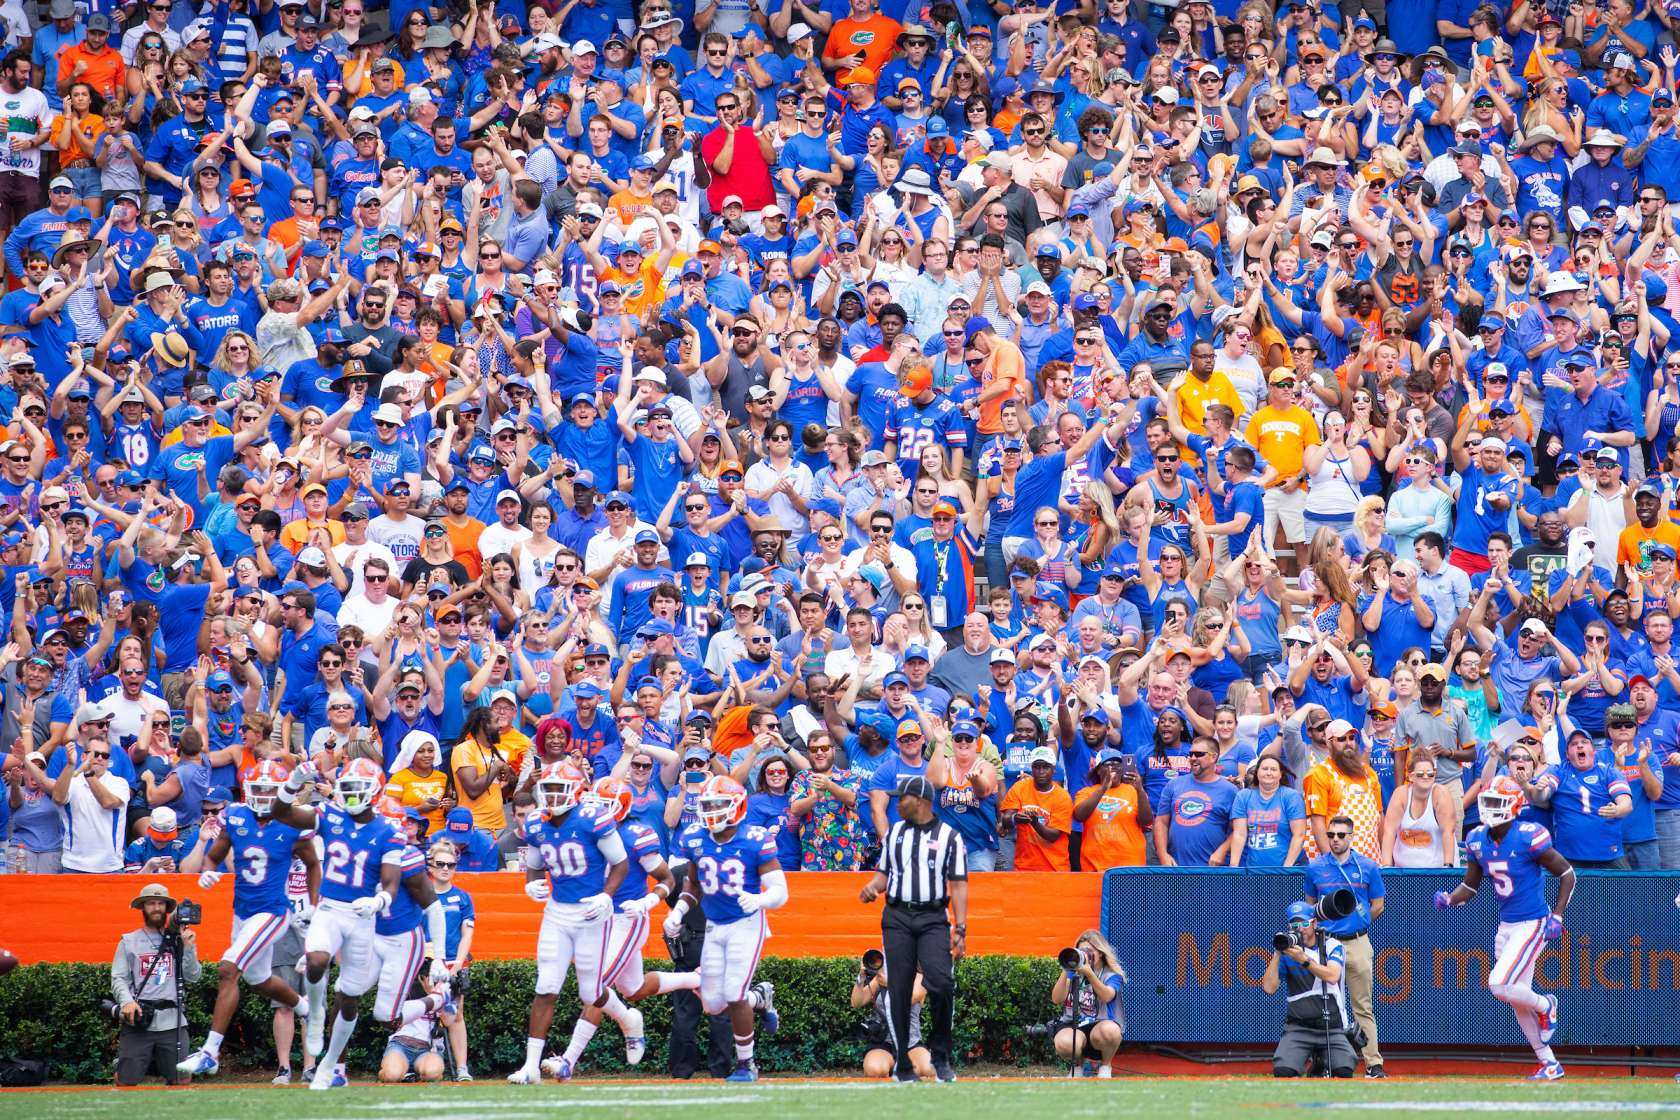 football game with crowd